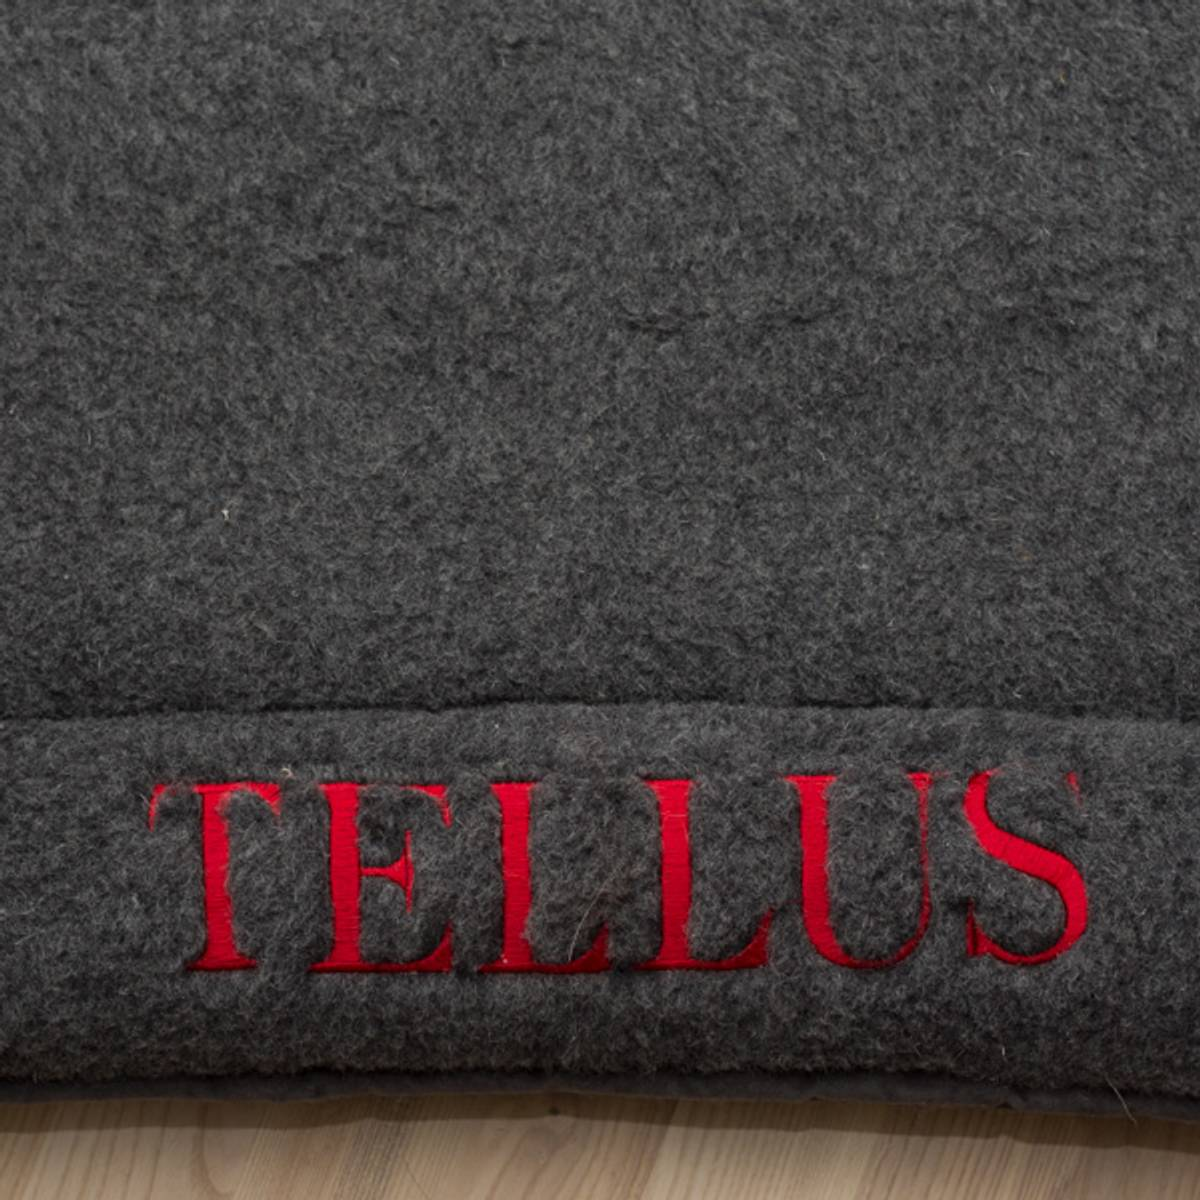 Wool bed elevated edges special color and/or name embroidery